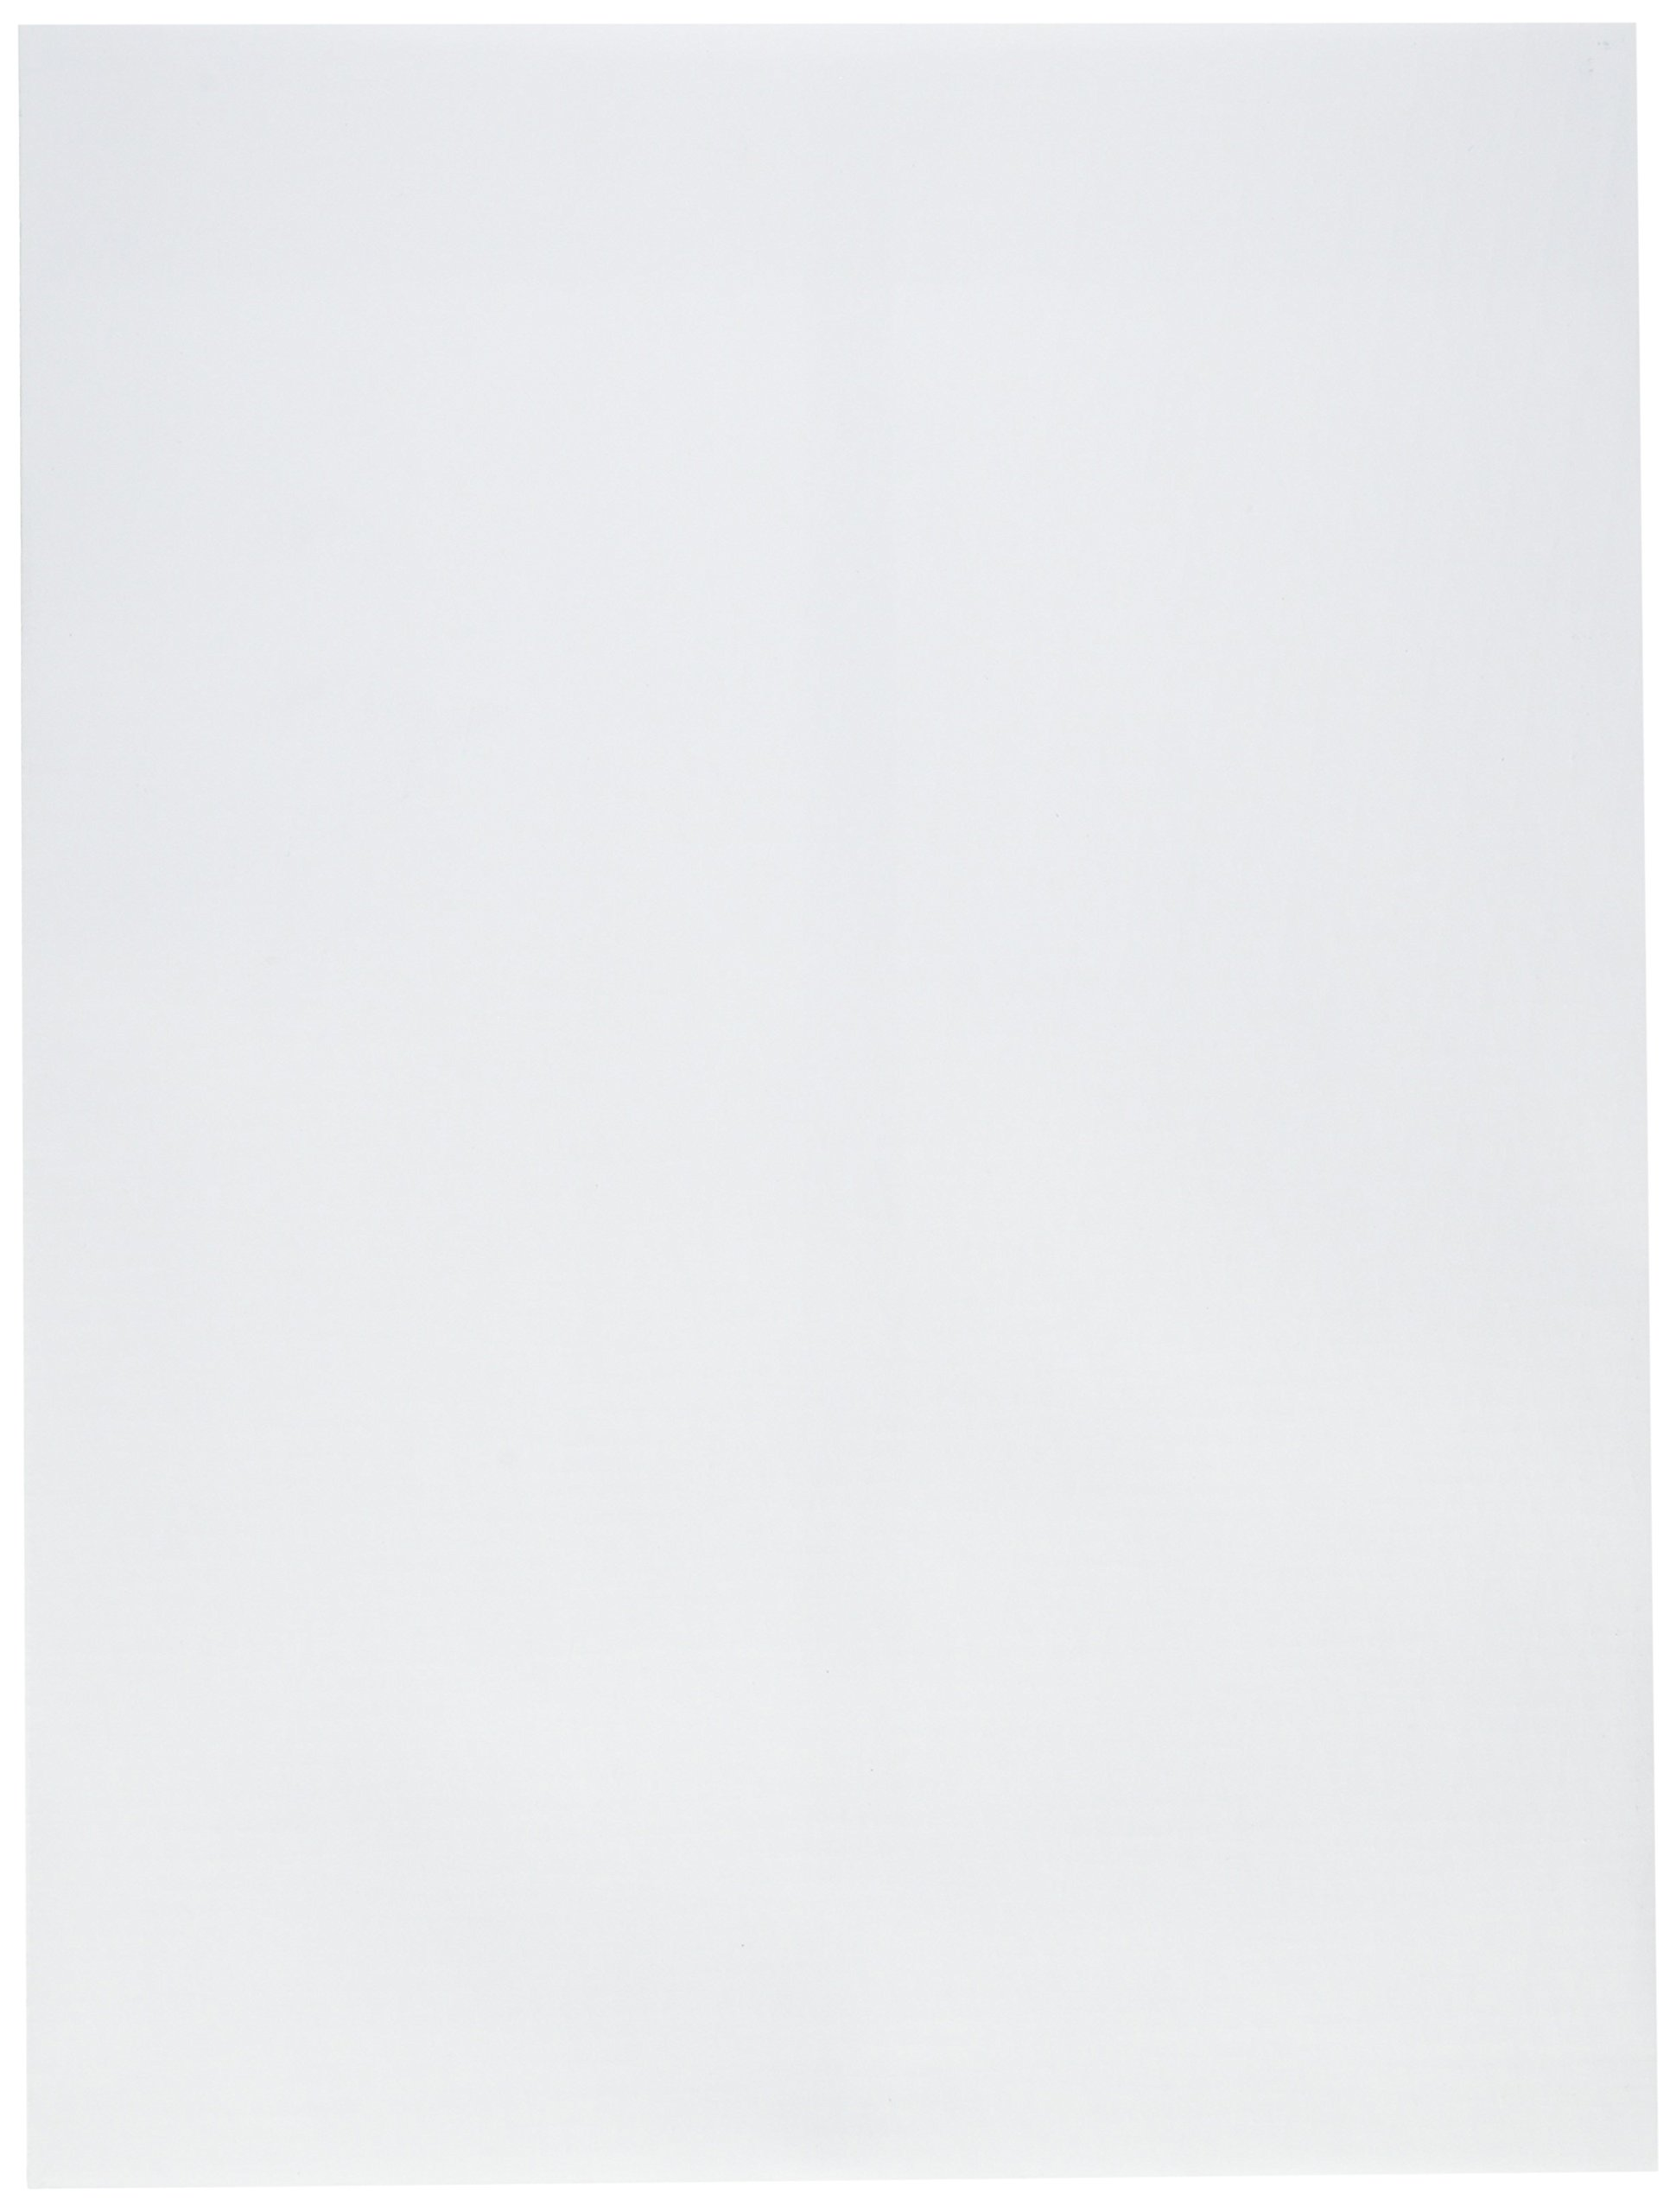 Quality Park S3610 Quality Park Ship-Lite Envelopes, Self-Seal, 9x12, White, 9x12, 100/Box